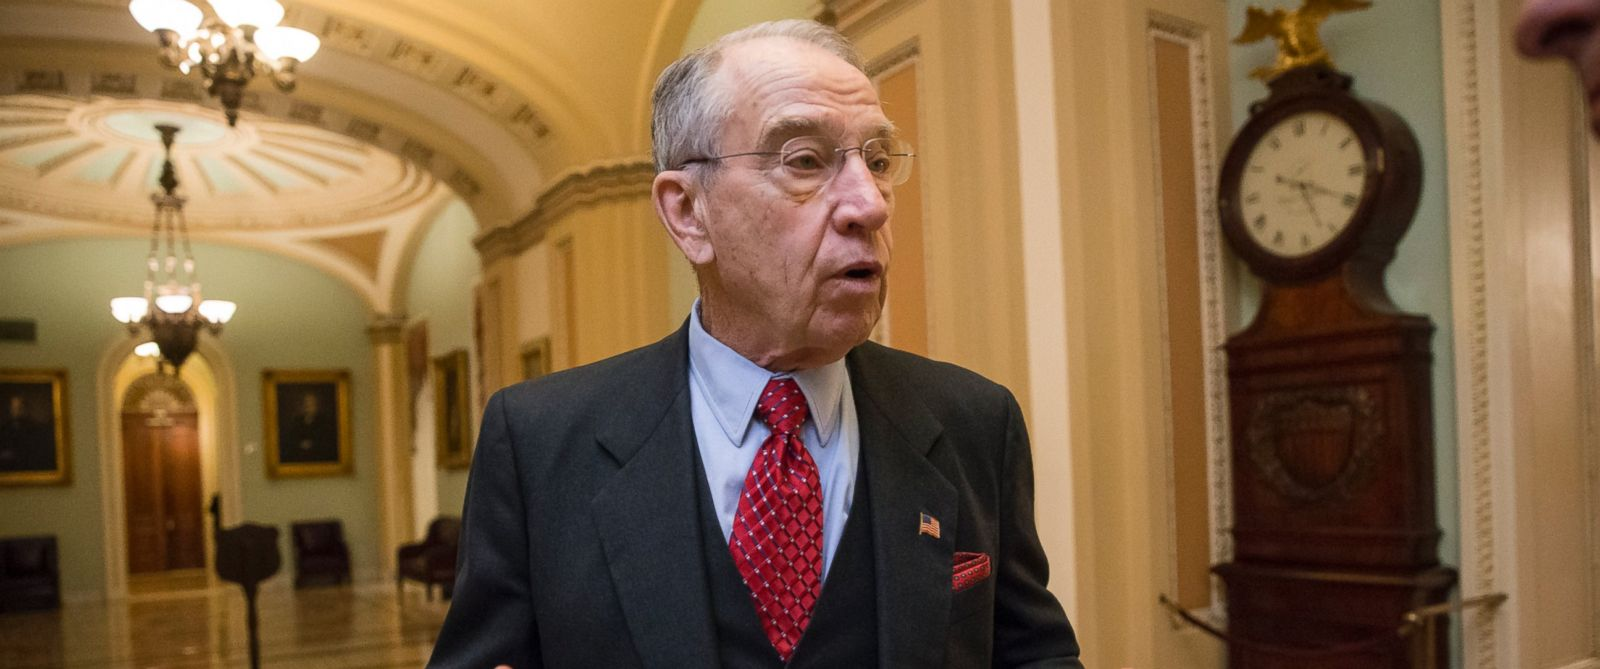 PHOTO: Senate Judiciary Committee Chairman Chuck Grassley walks to the chamber in Washington, Feb. 10, 2016.